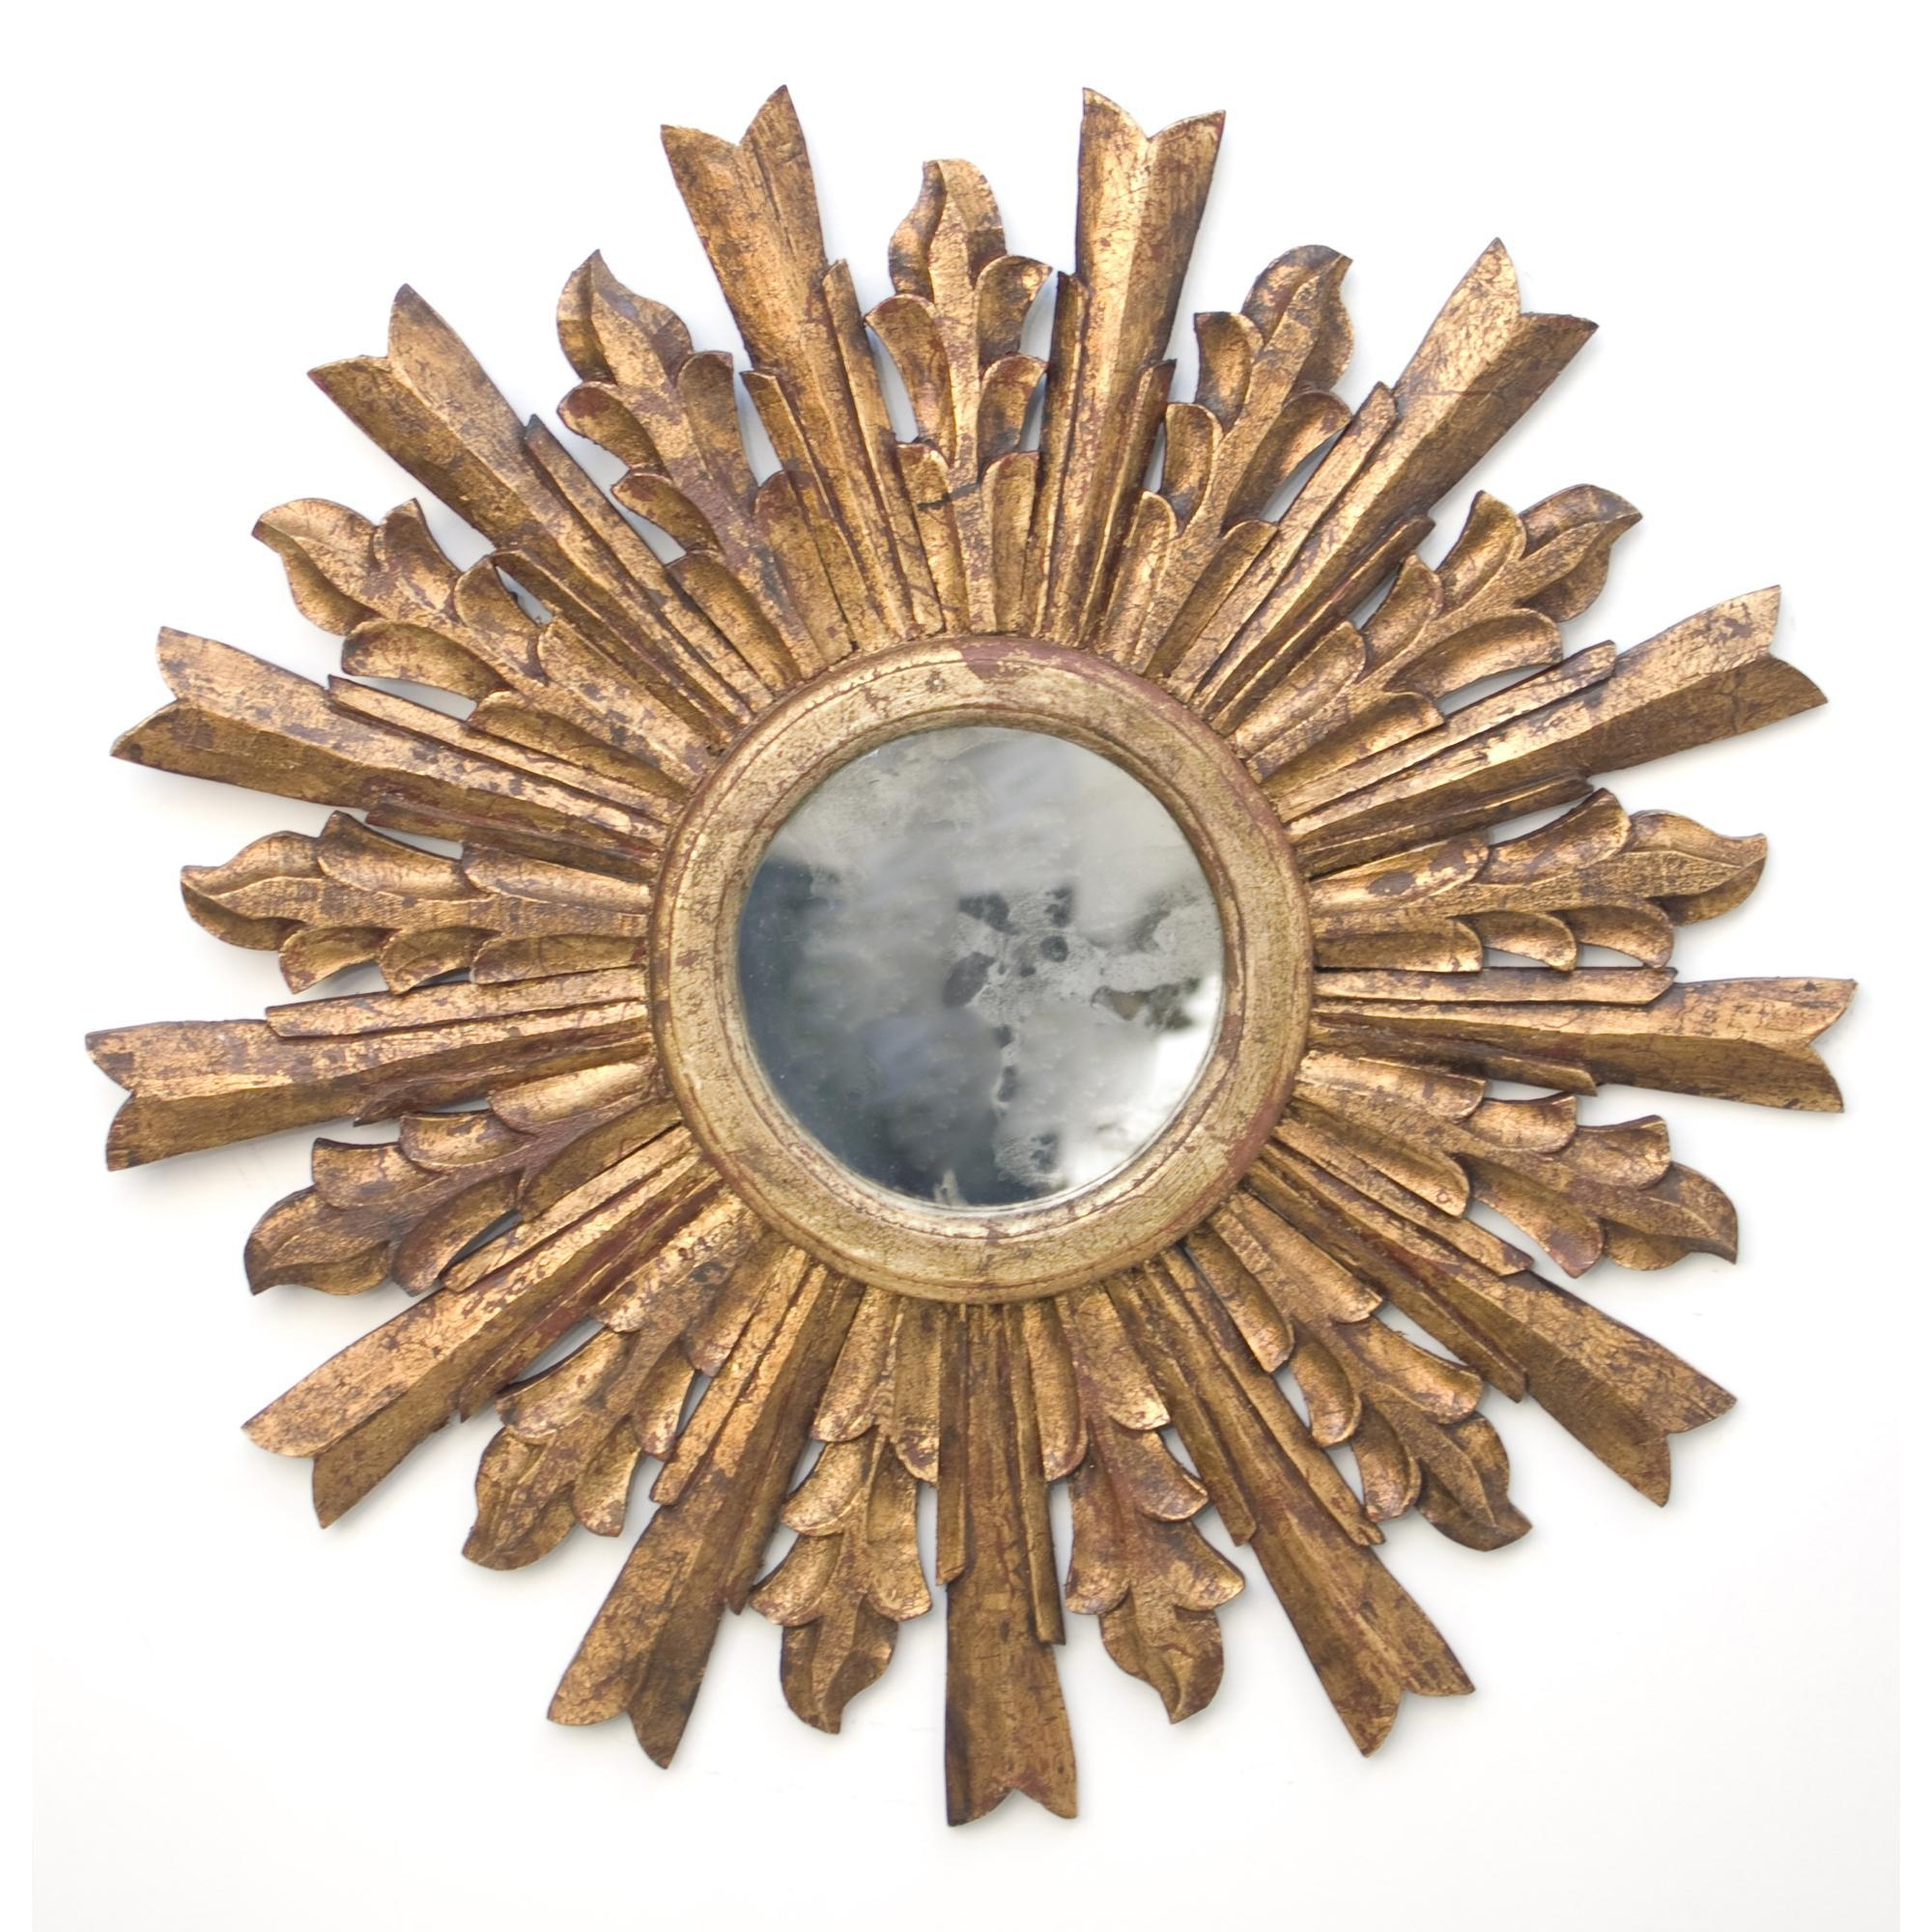 Small Gold Sunburst Mirror 128 Enchanting Ideas With Starburst With Regard To Starburst Convex Mirror (Image 16 of 20)